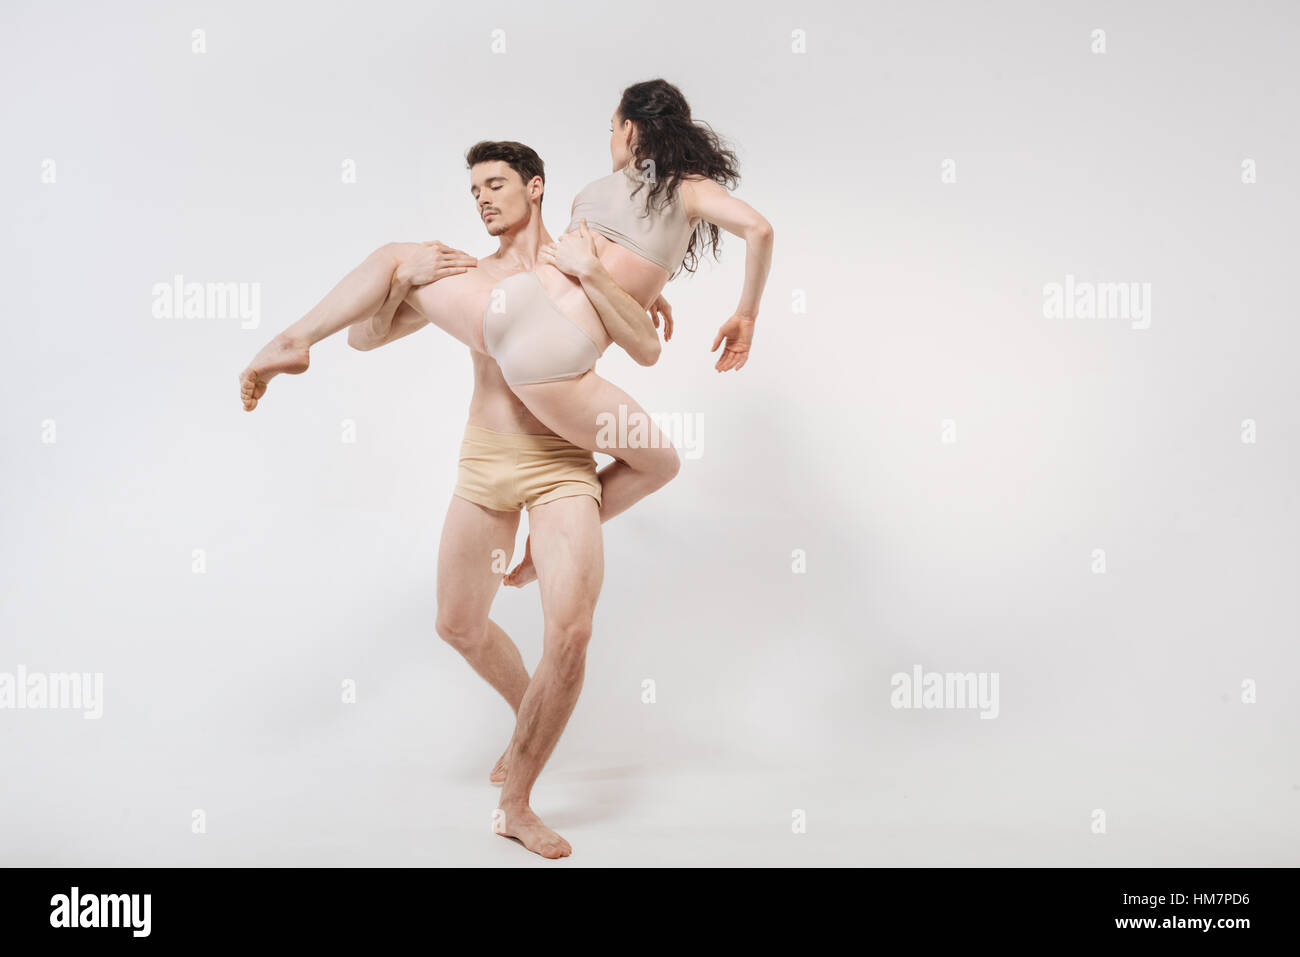 Skilled dancers dancing in close interaction with each other - Stock Image